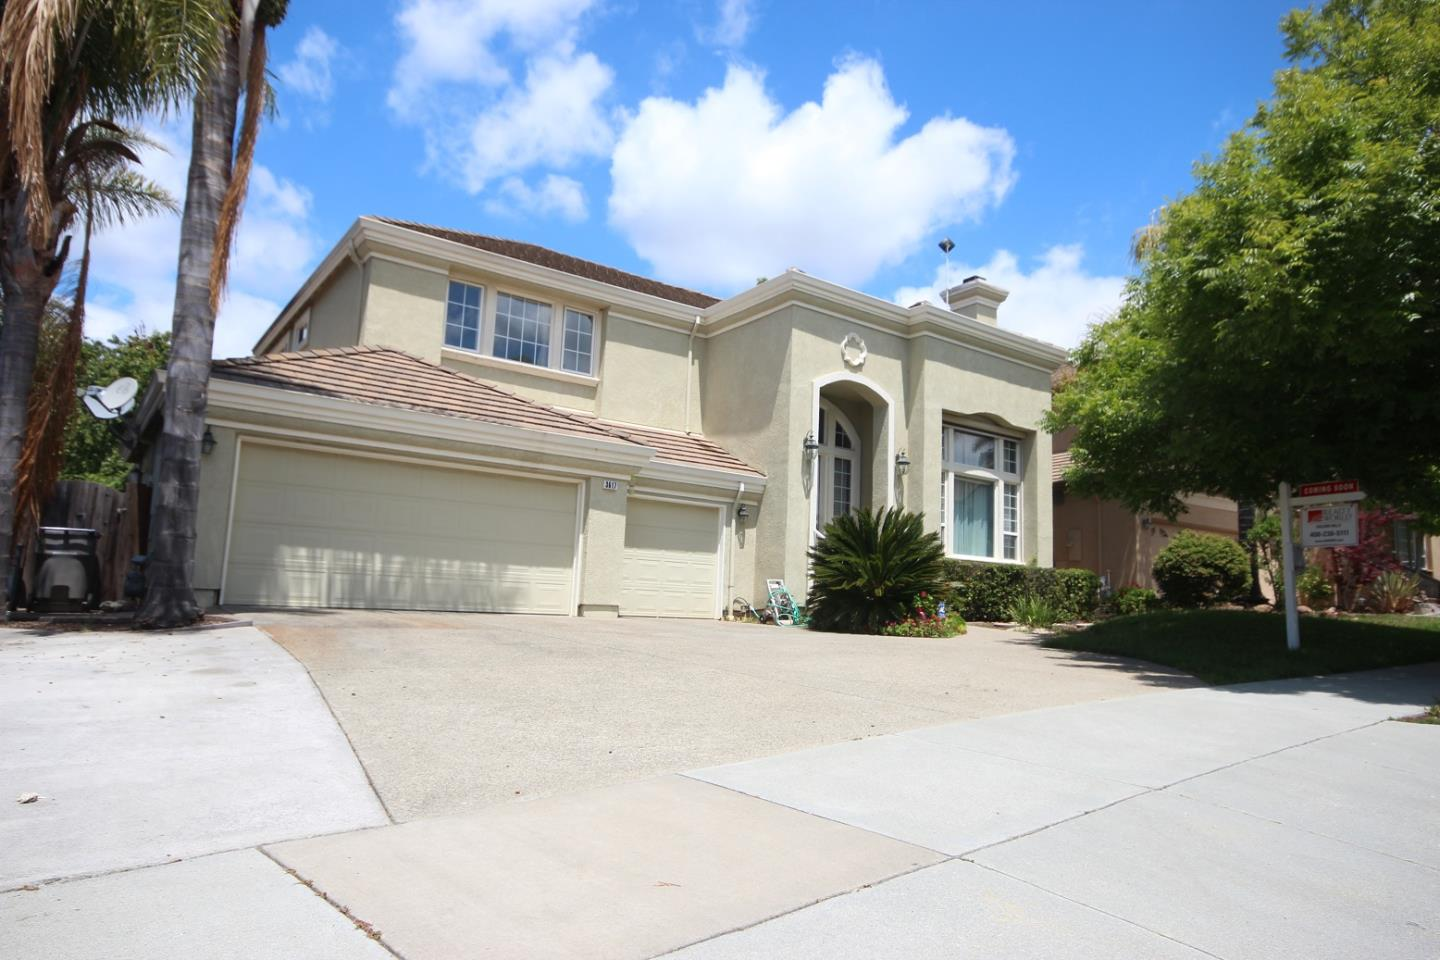 3617 Pleasant Knoll DR, Evergreen in Santa Clara County, CA 95148 Home for Sale